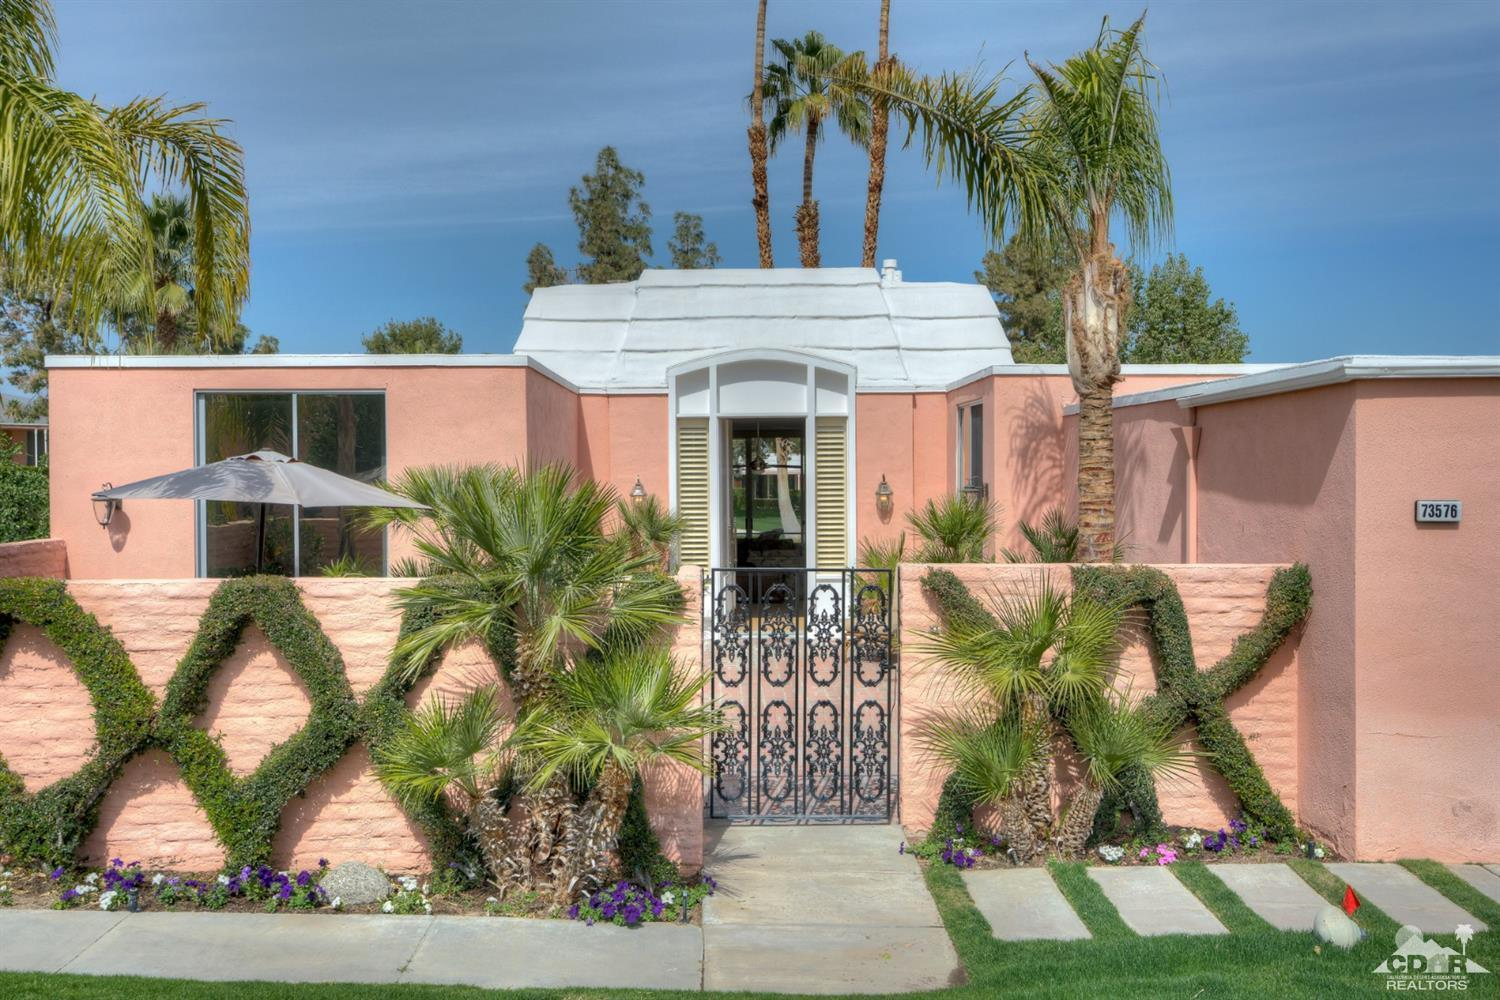 Photo of 73576 El Hasson Circle, Palm Desert, CA 92260